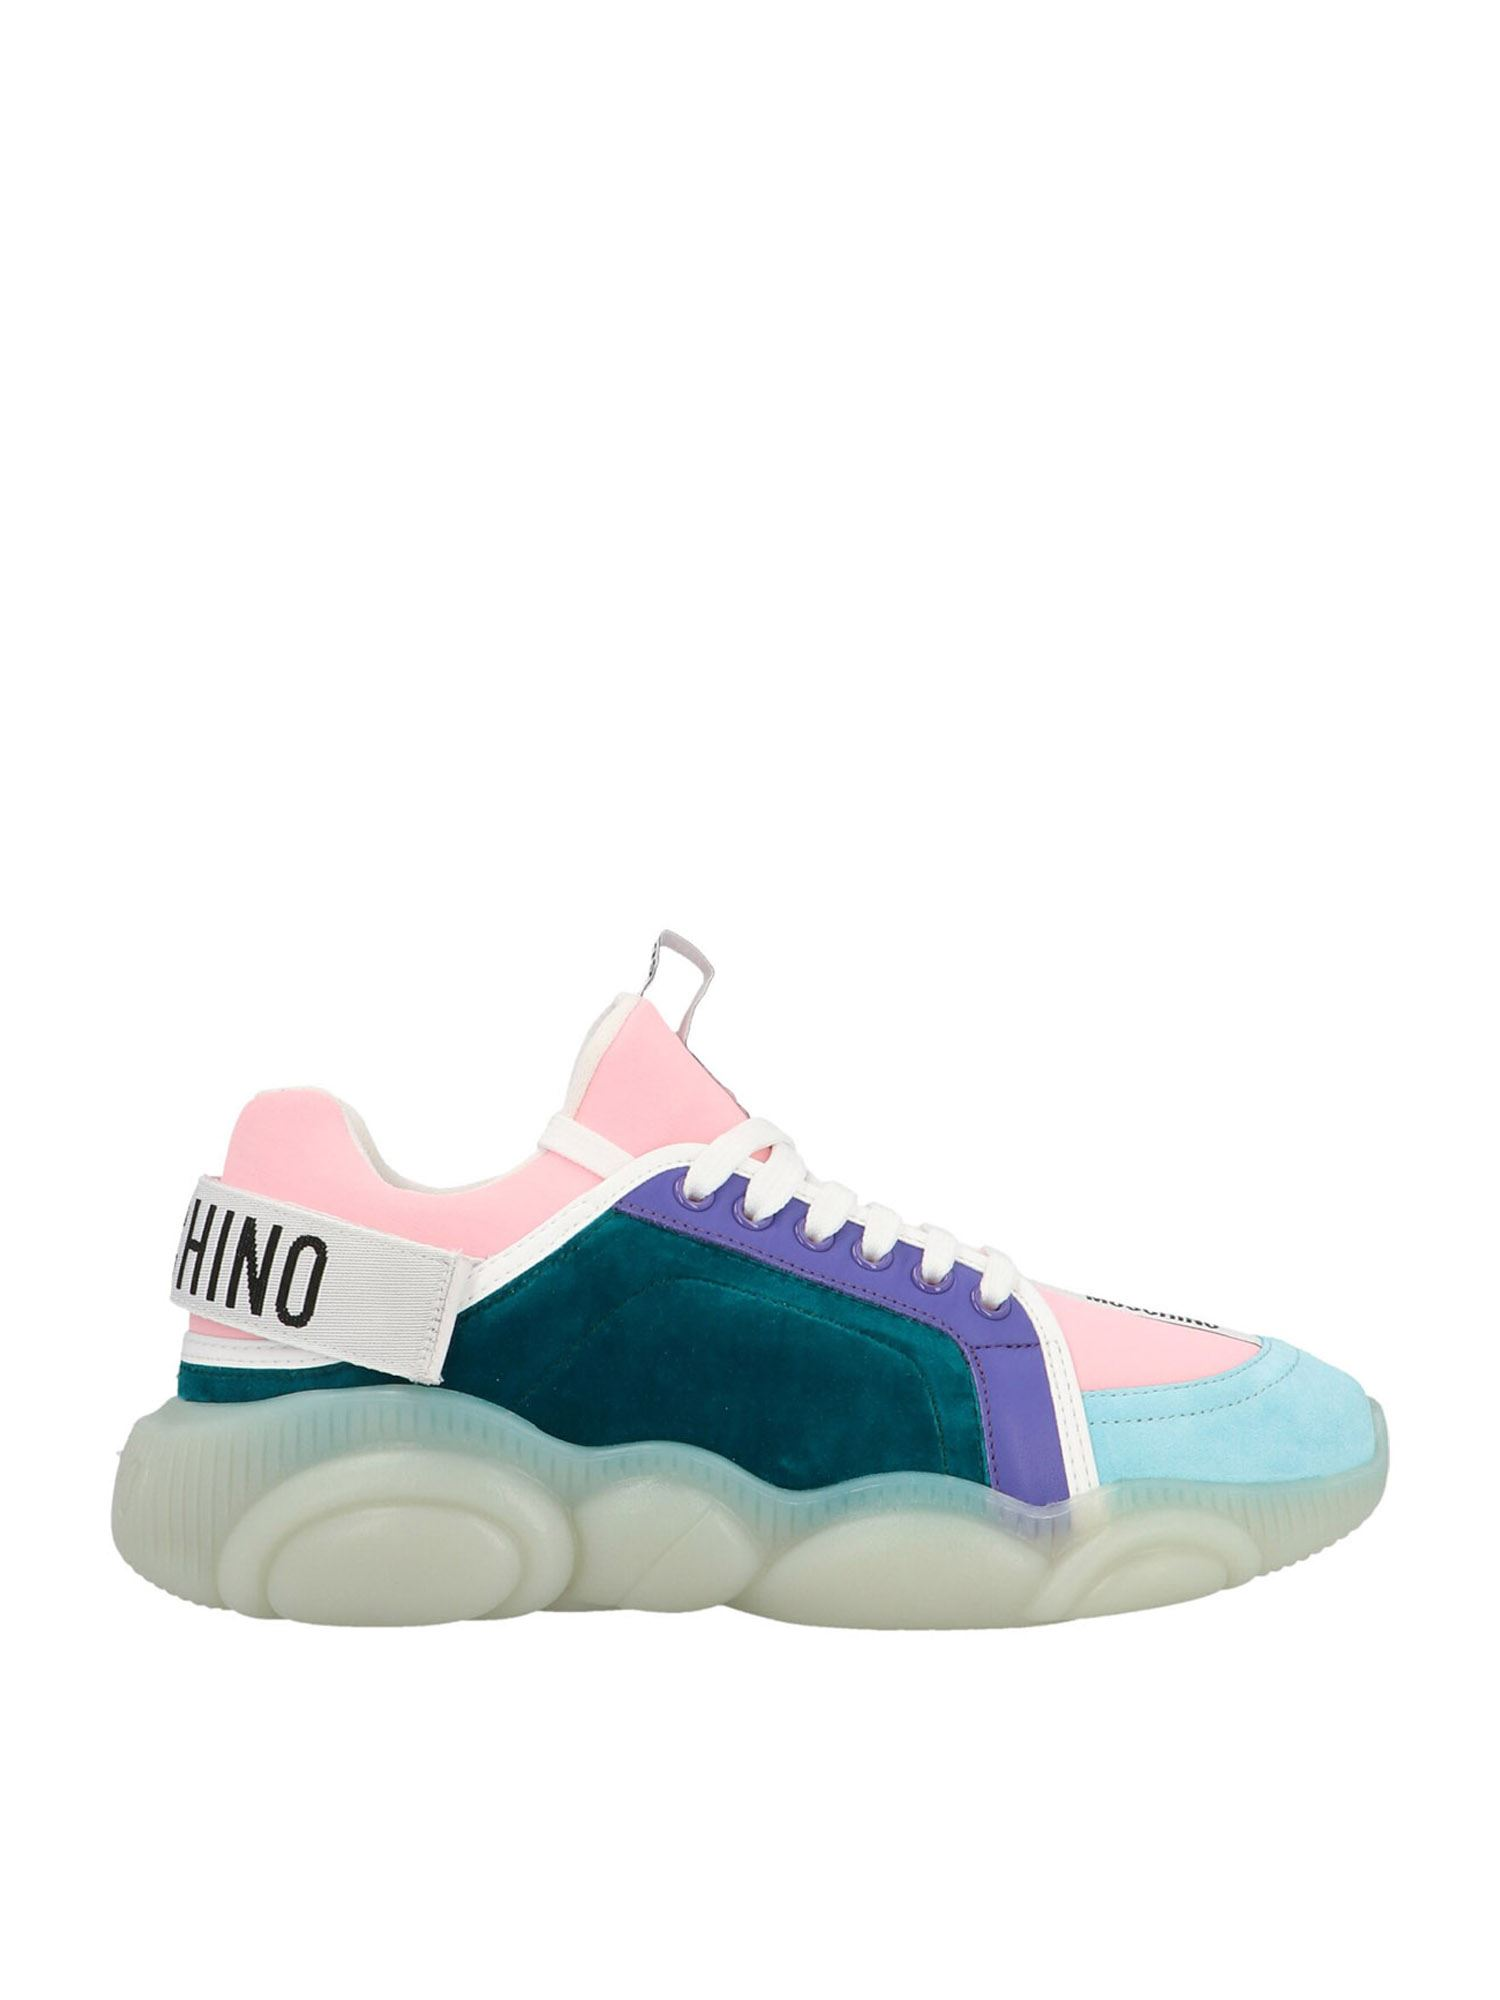 Moschino TEDDY SHOES SNEAKERS IN TEAL COLOR